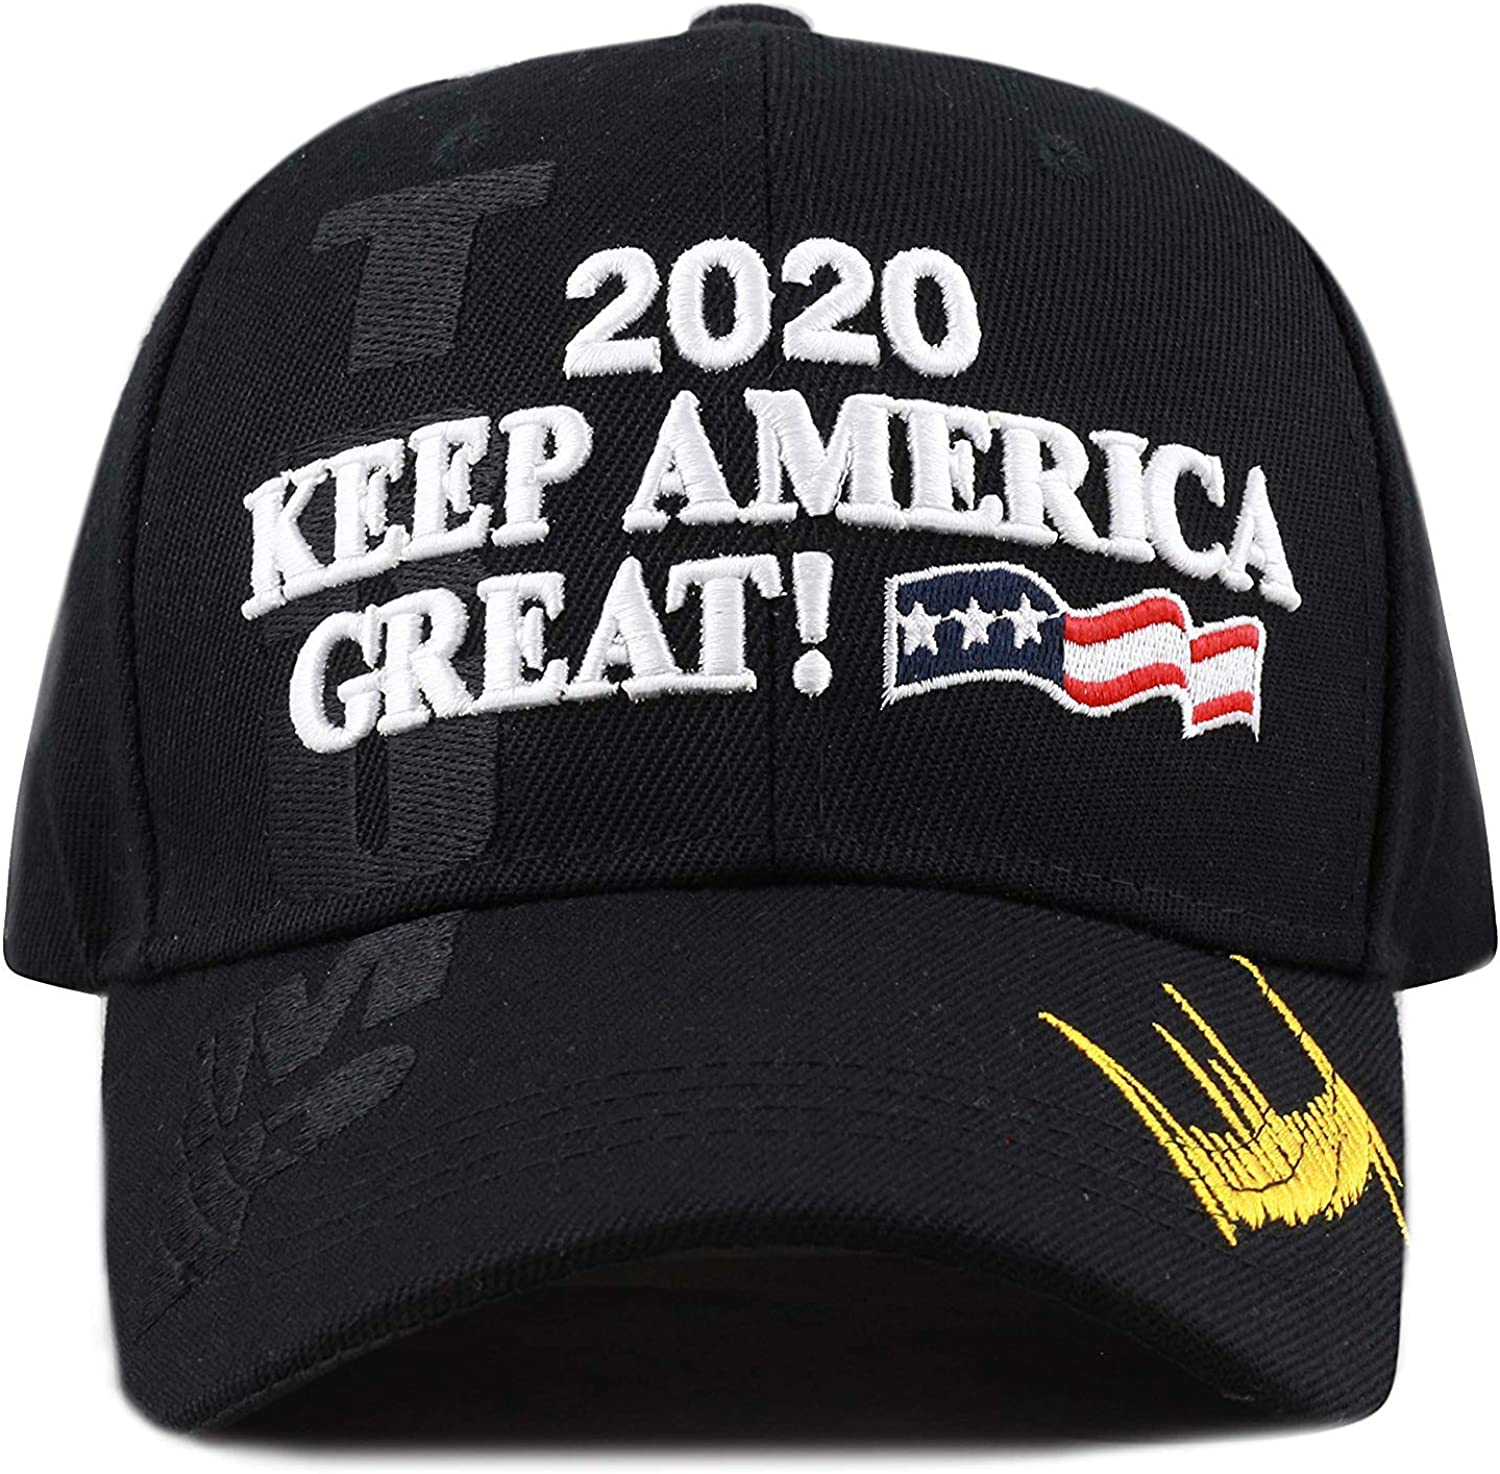 Embroidery Campaign Hat USA Baseball Cap Trump 2020 Keep America Great